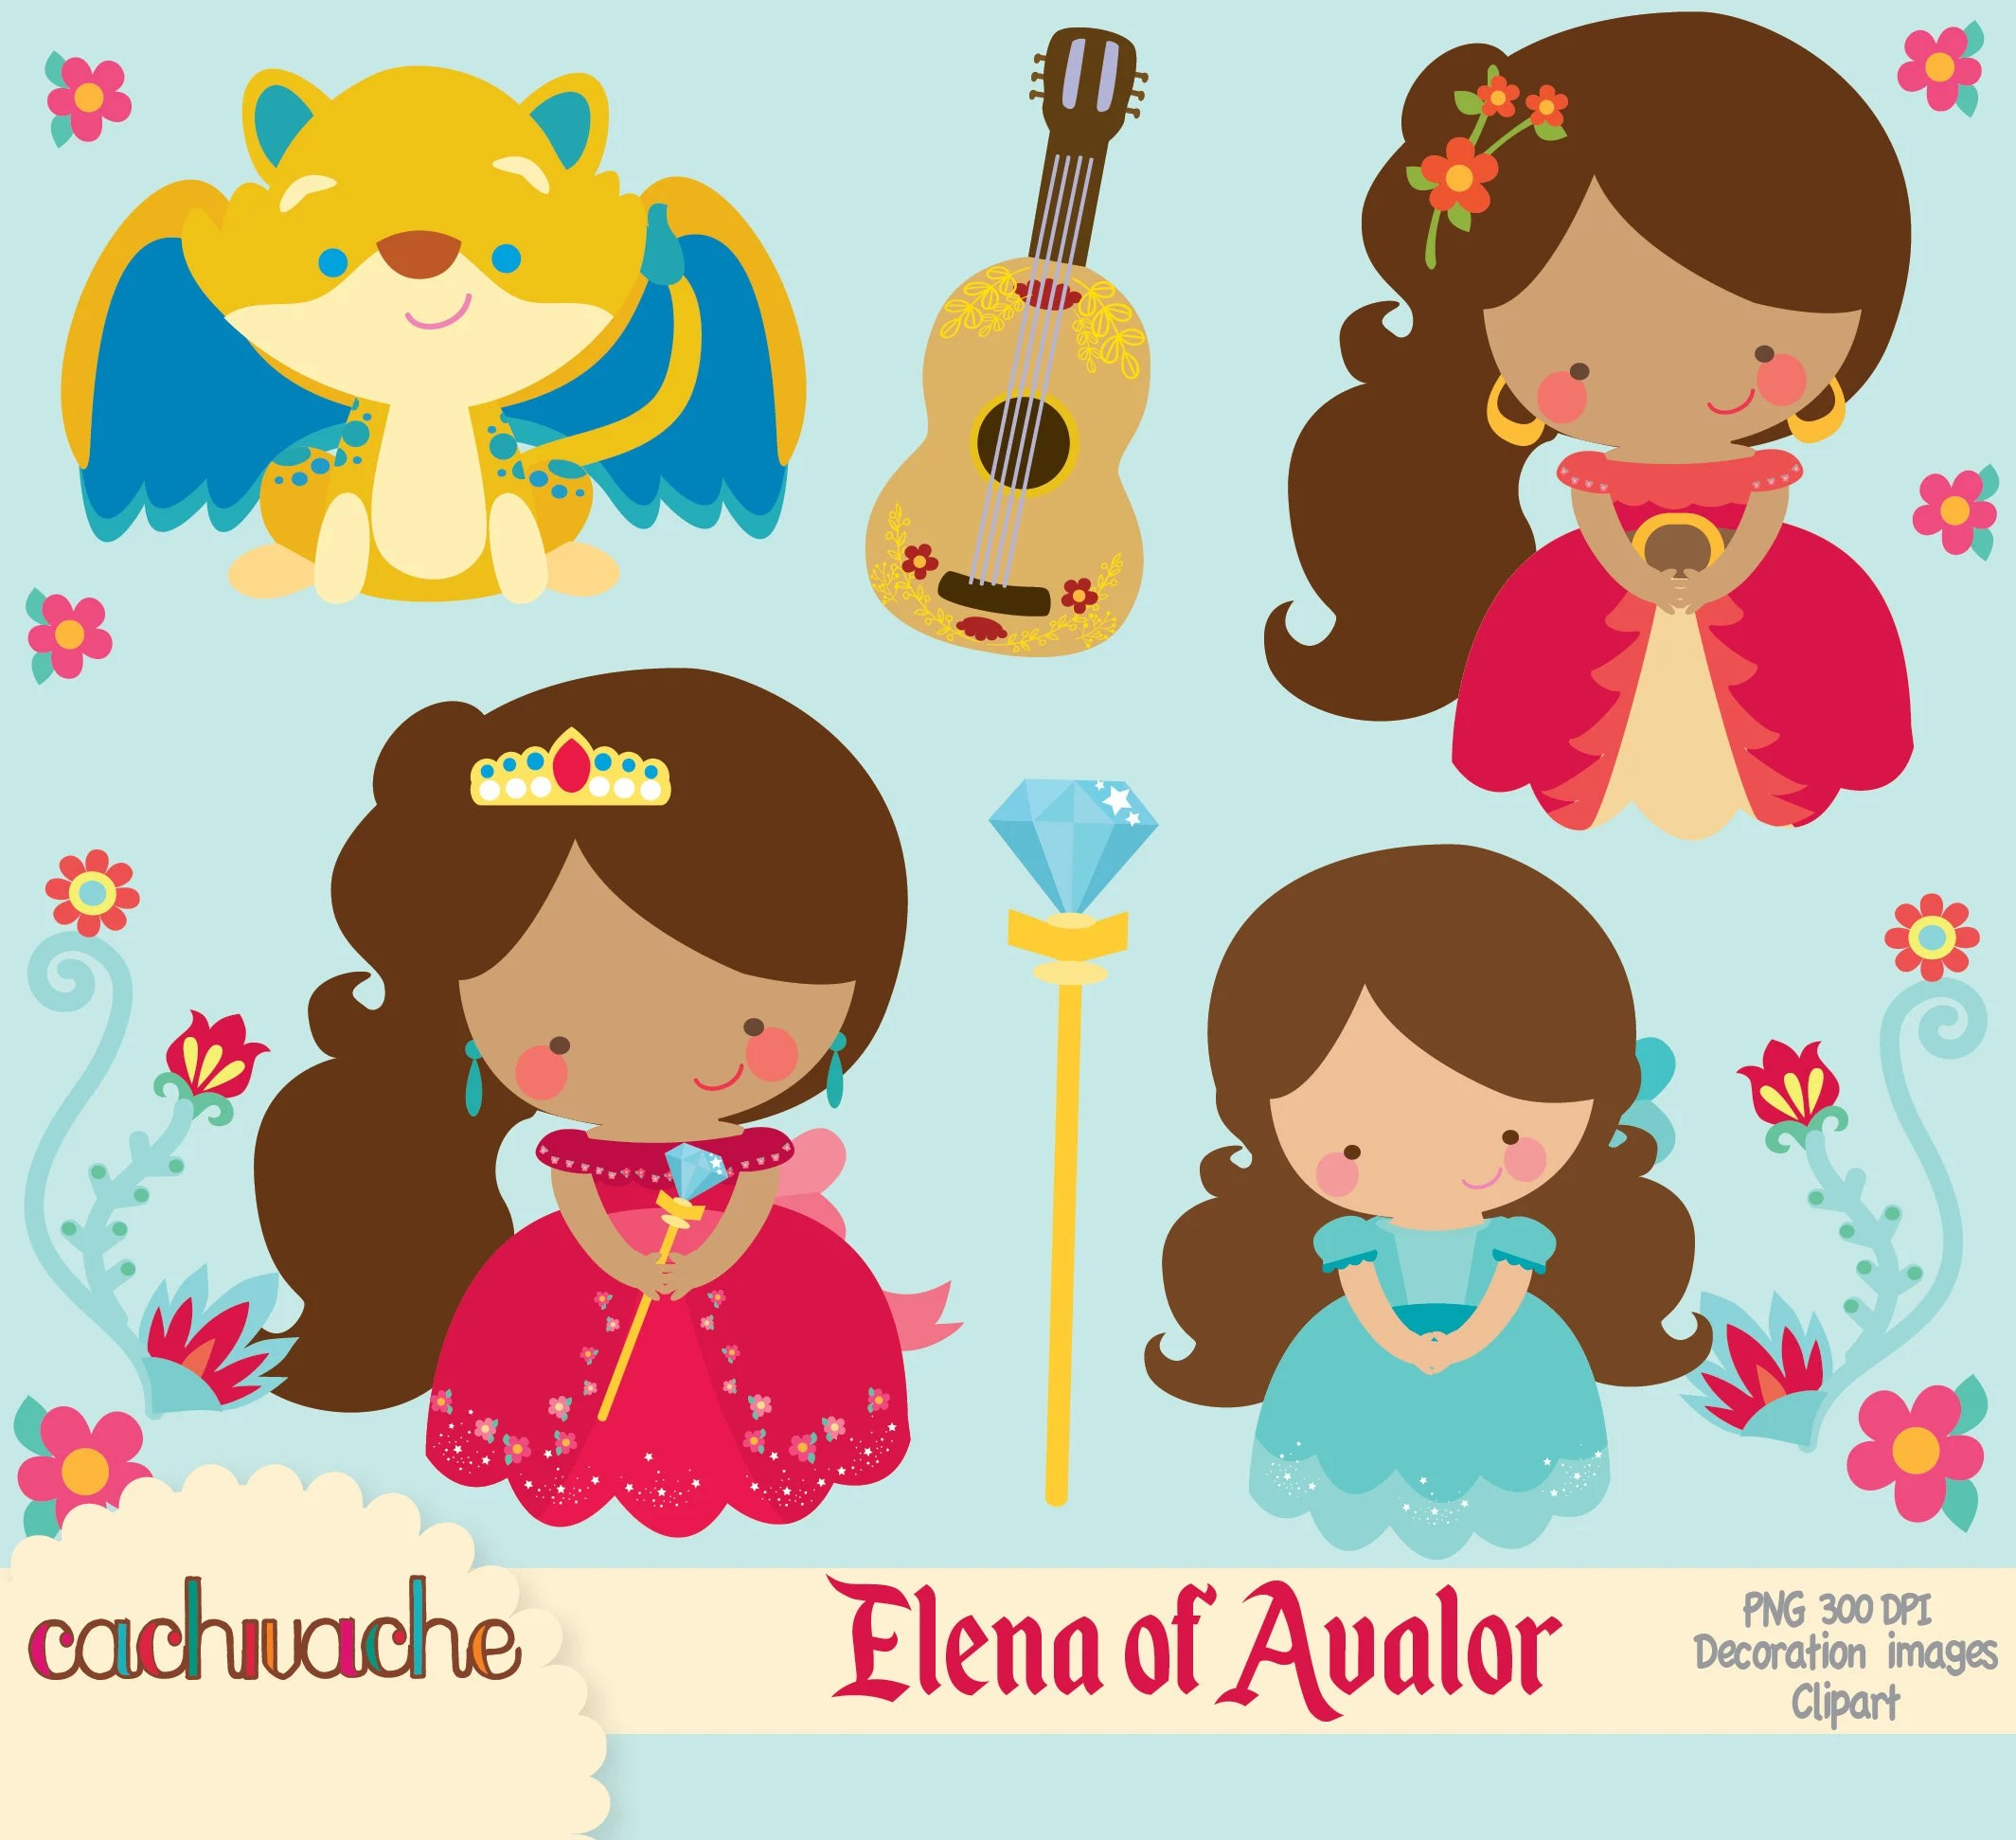 Arte Definition Francais Elena Of Avalor Clipart Png And Jpg High Definition Instant Download Disney Inspired Princess Party Printables Disney Elena De Avalor